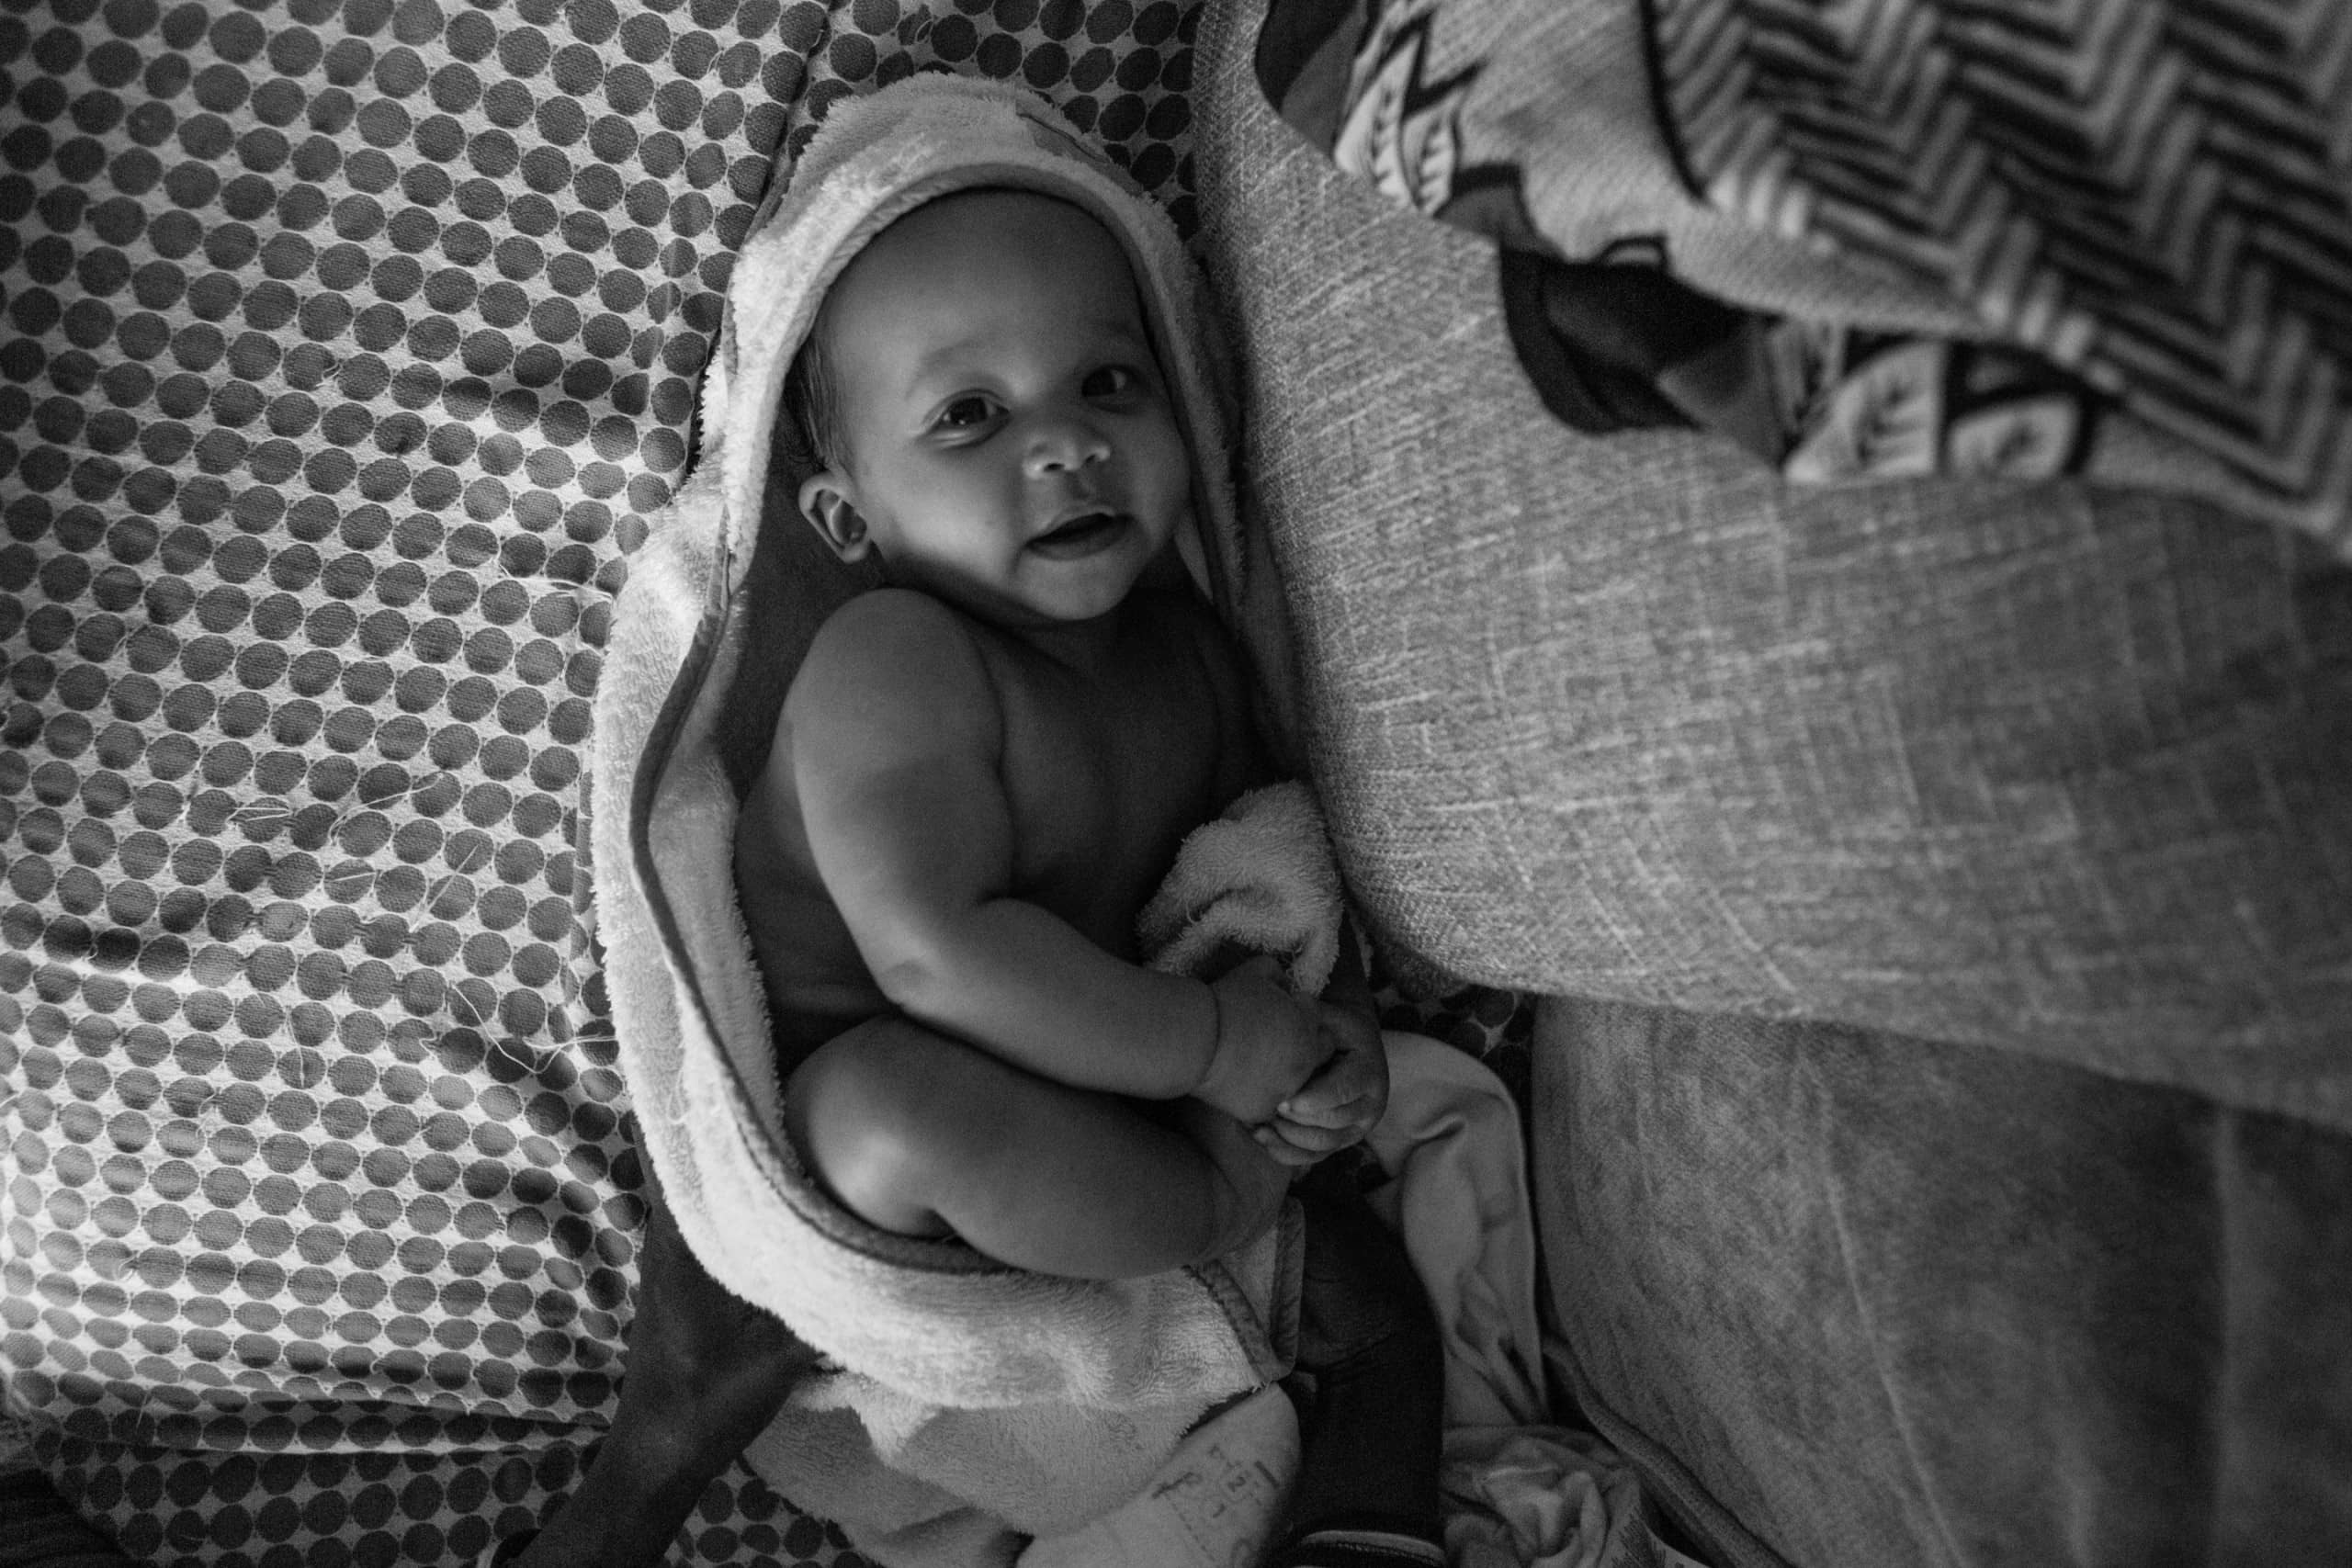 Young baby in towel looks up at the camera